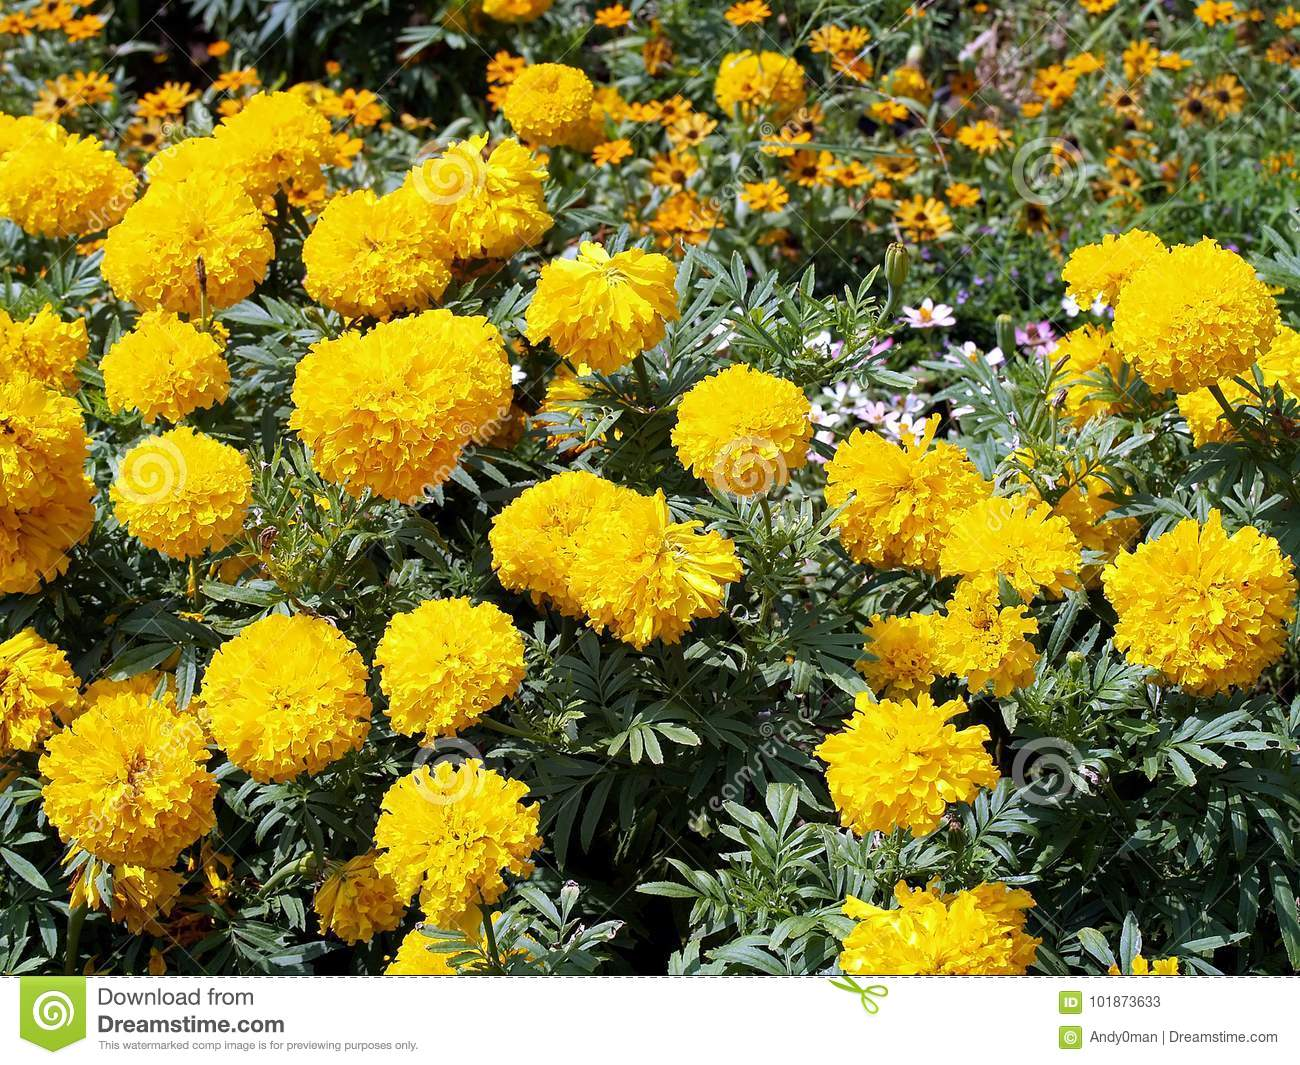 Yellow Marigold Flowers Blooming In Garden Plant Of Daisy Family